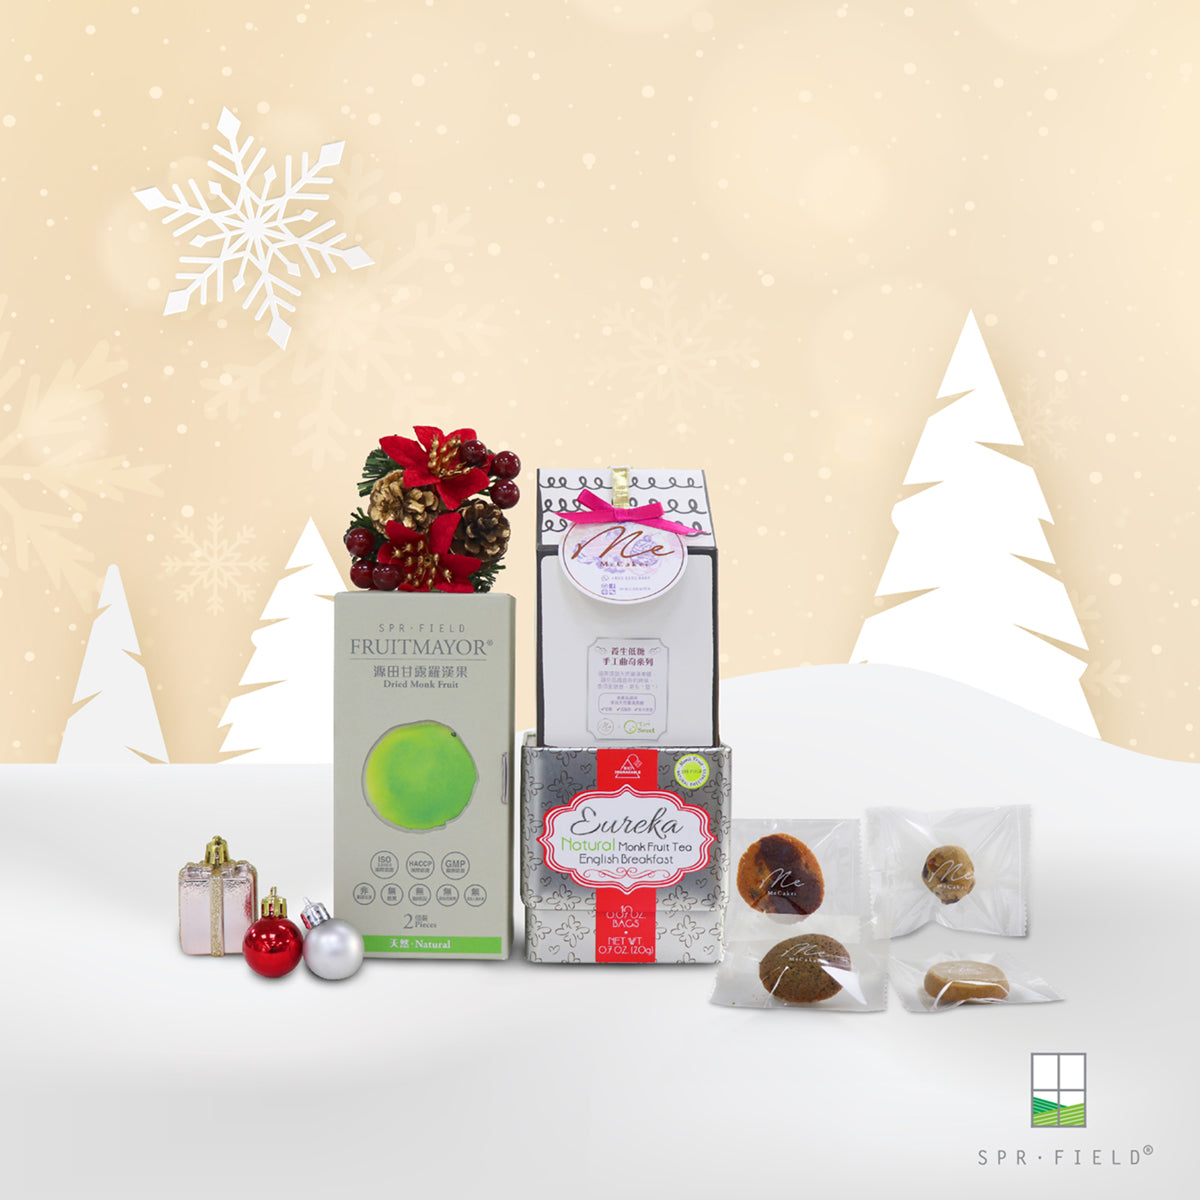 SPR.FIELD Christmas Gift Set 2019 - Holiday